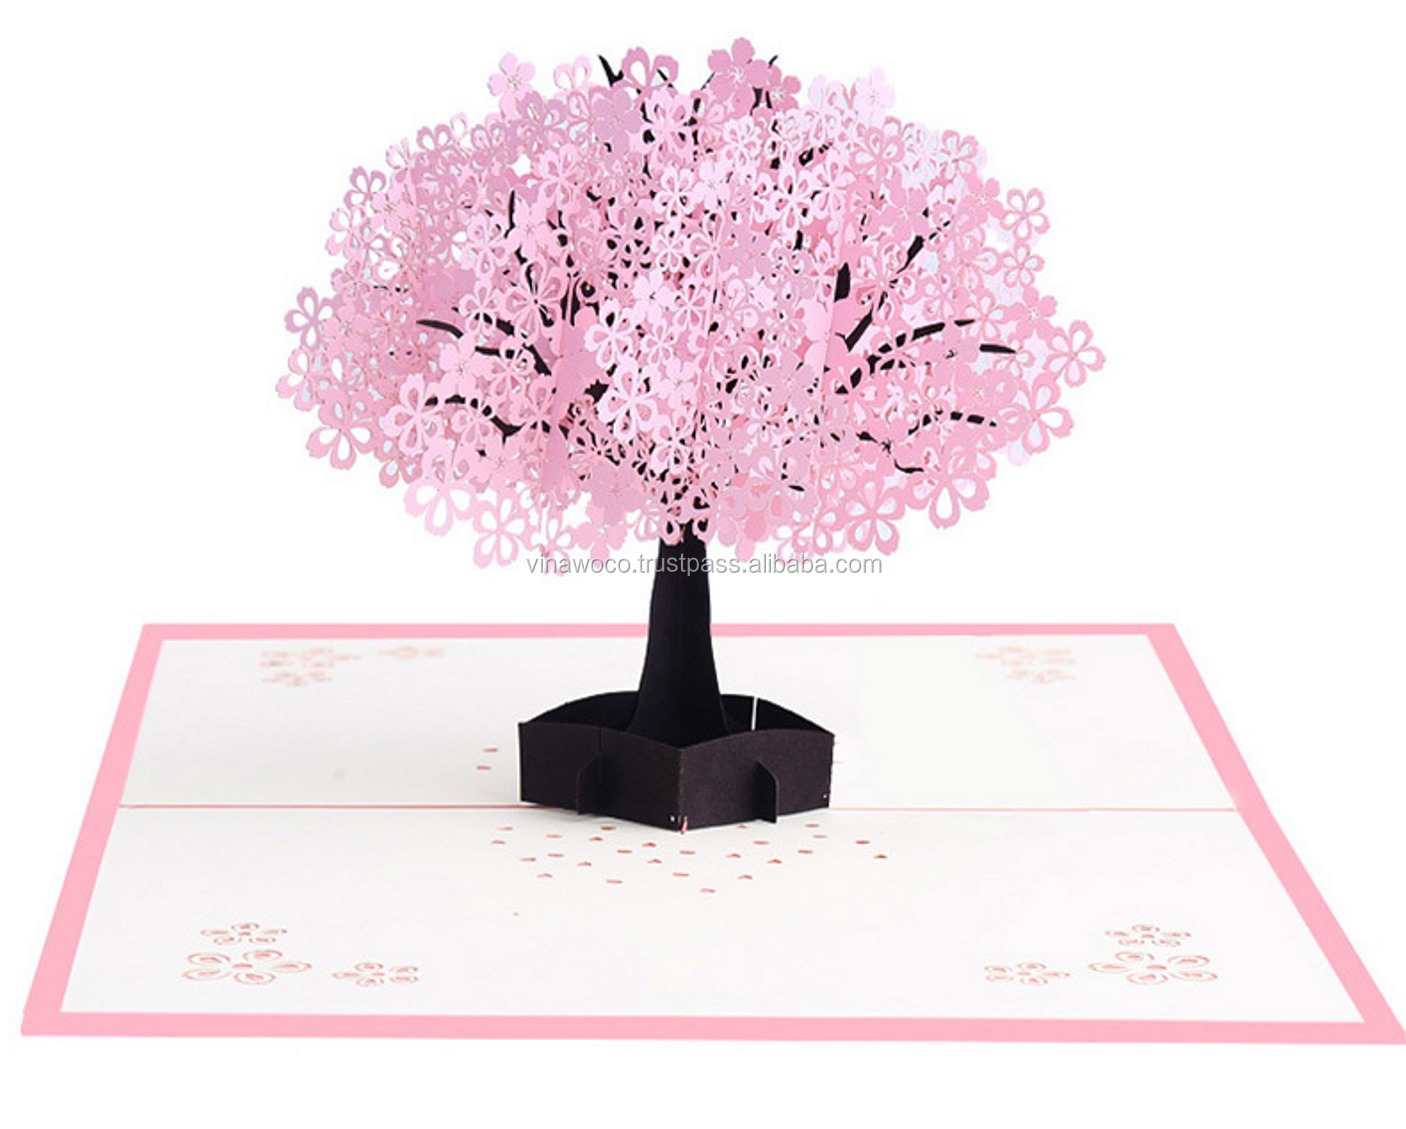 Deluxe Cherry Blossom Tree 3d Pop Up Cards Puberty Ceremony Invitation  Cards Baby Naming Ceremony Invitation Cards - Buy Handmade 3d Invitation